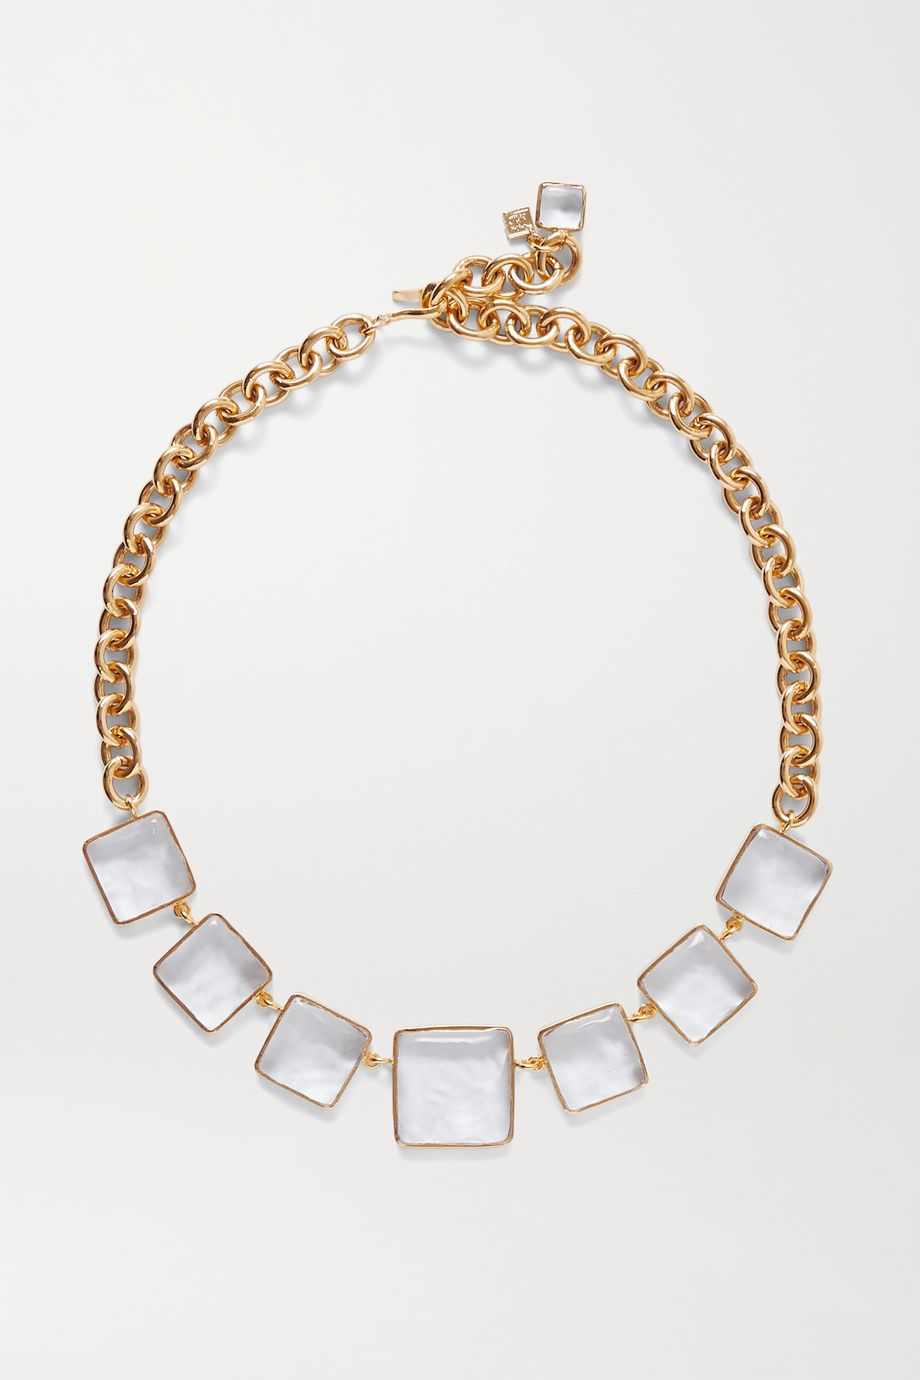 Loulou de la Falaise Gold-plated and glass necklace